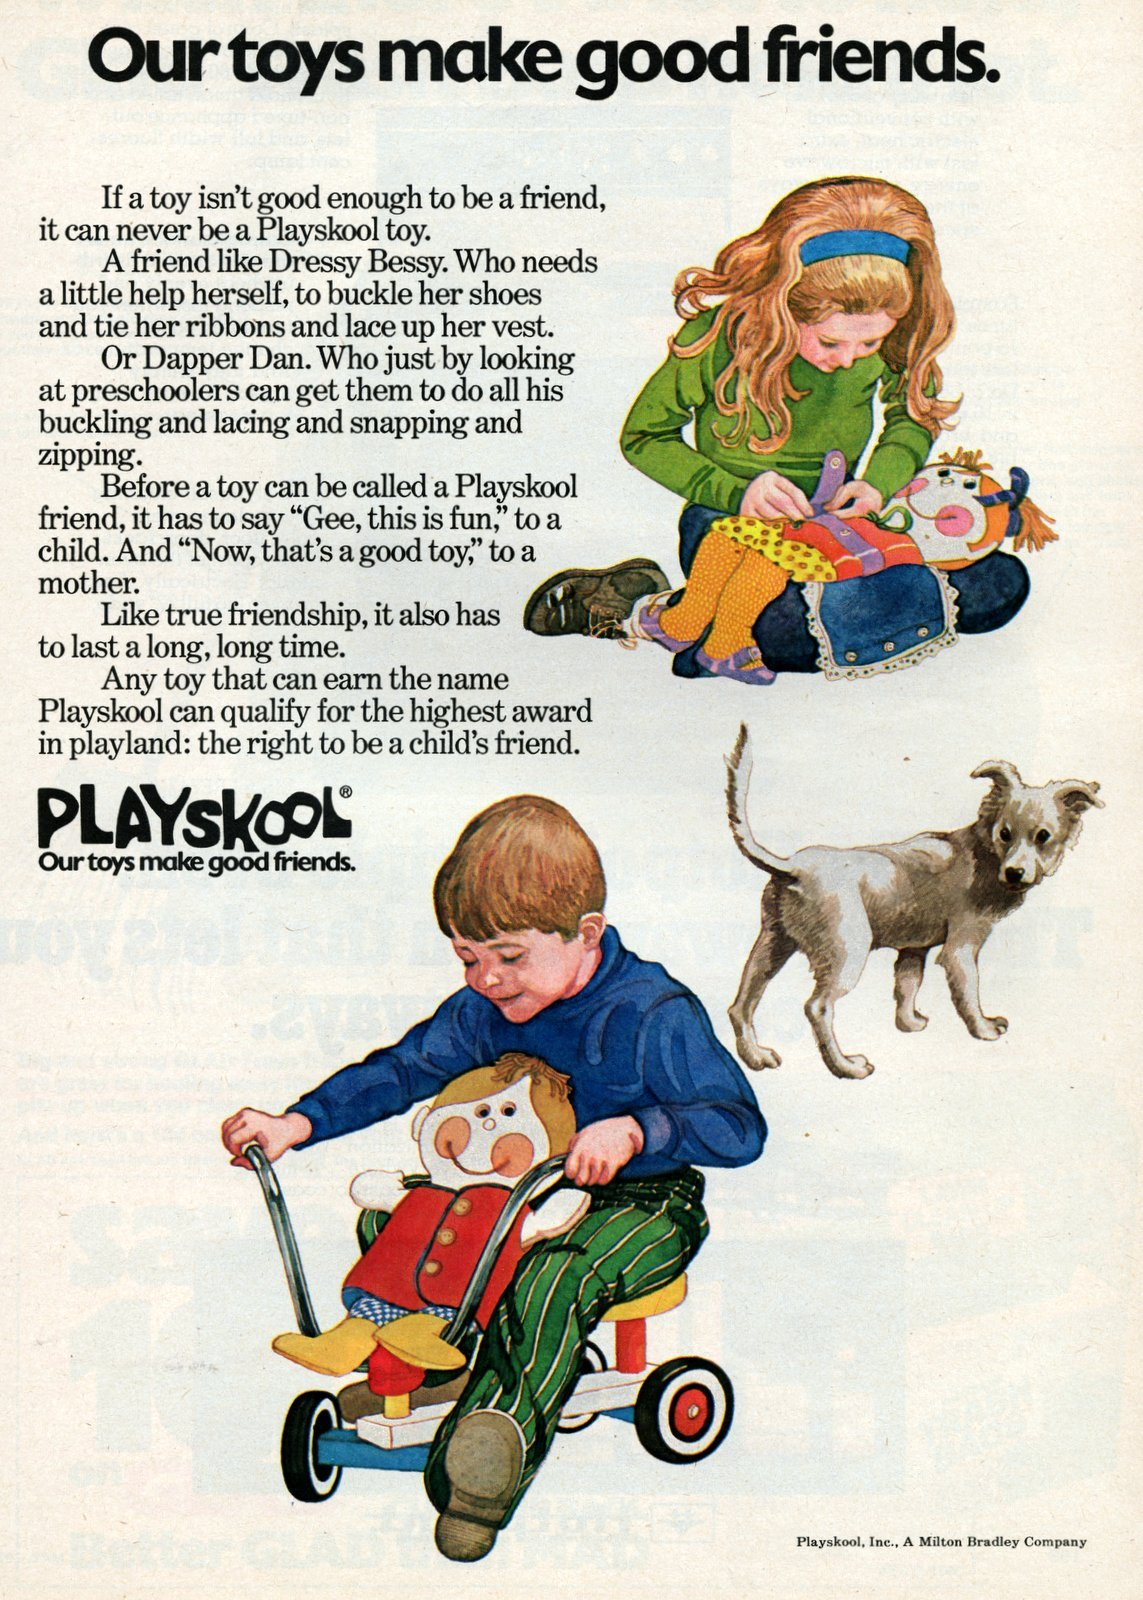 Vintage 1970s Playskool toys make good friends (1974)